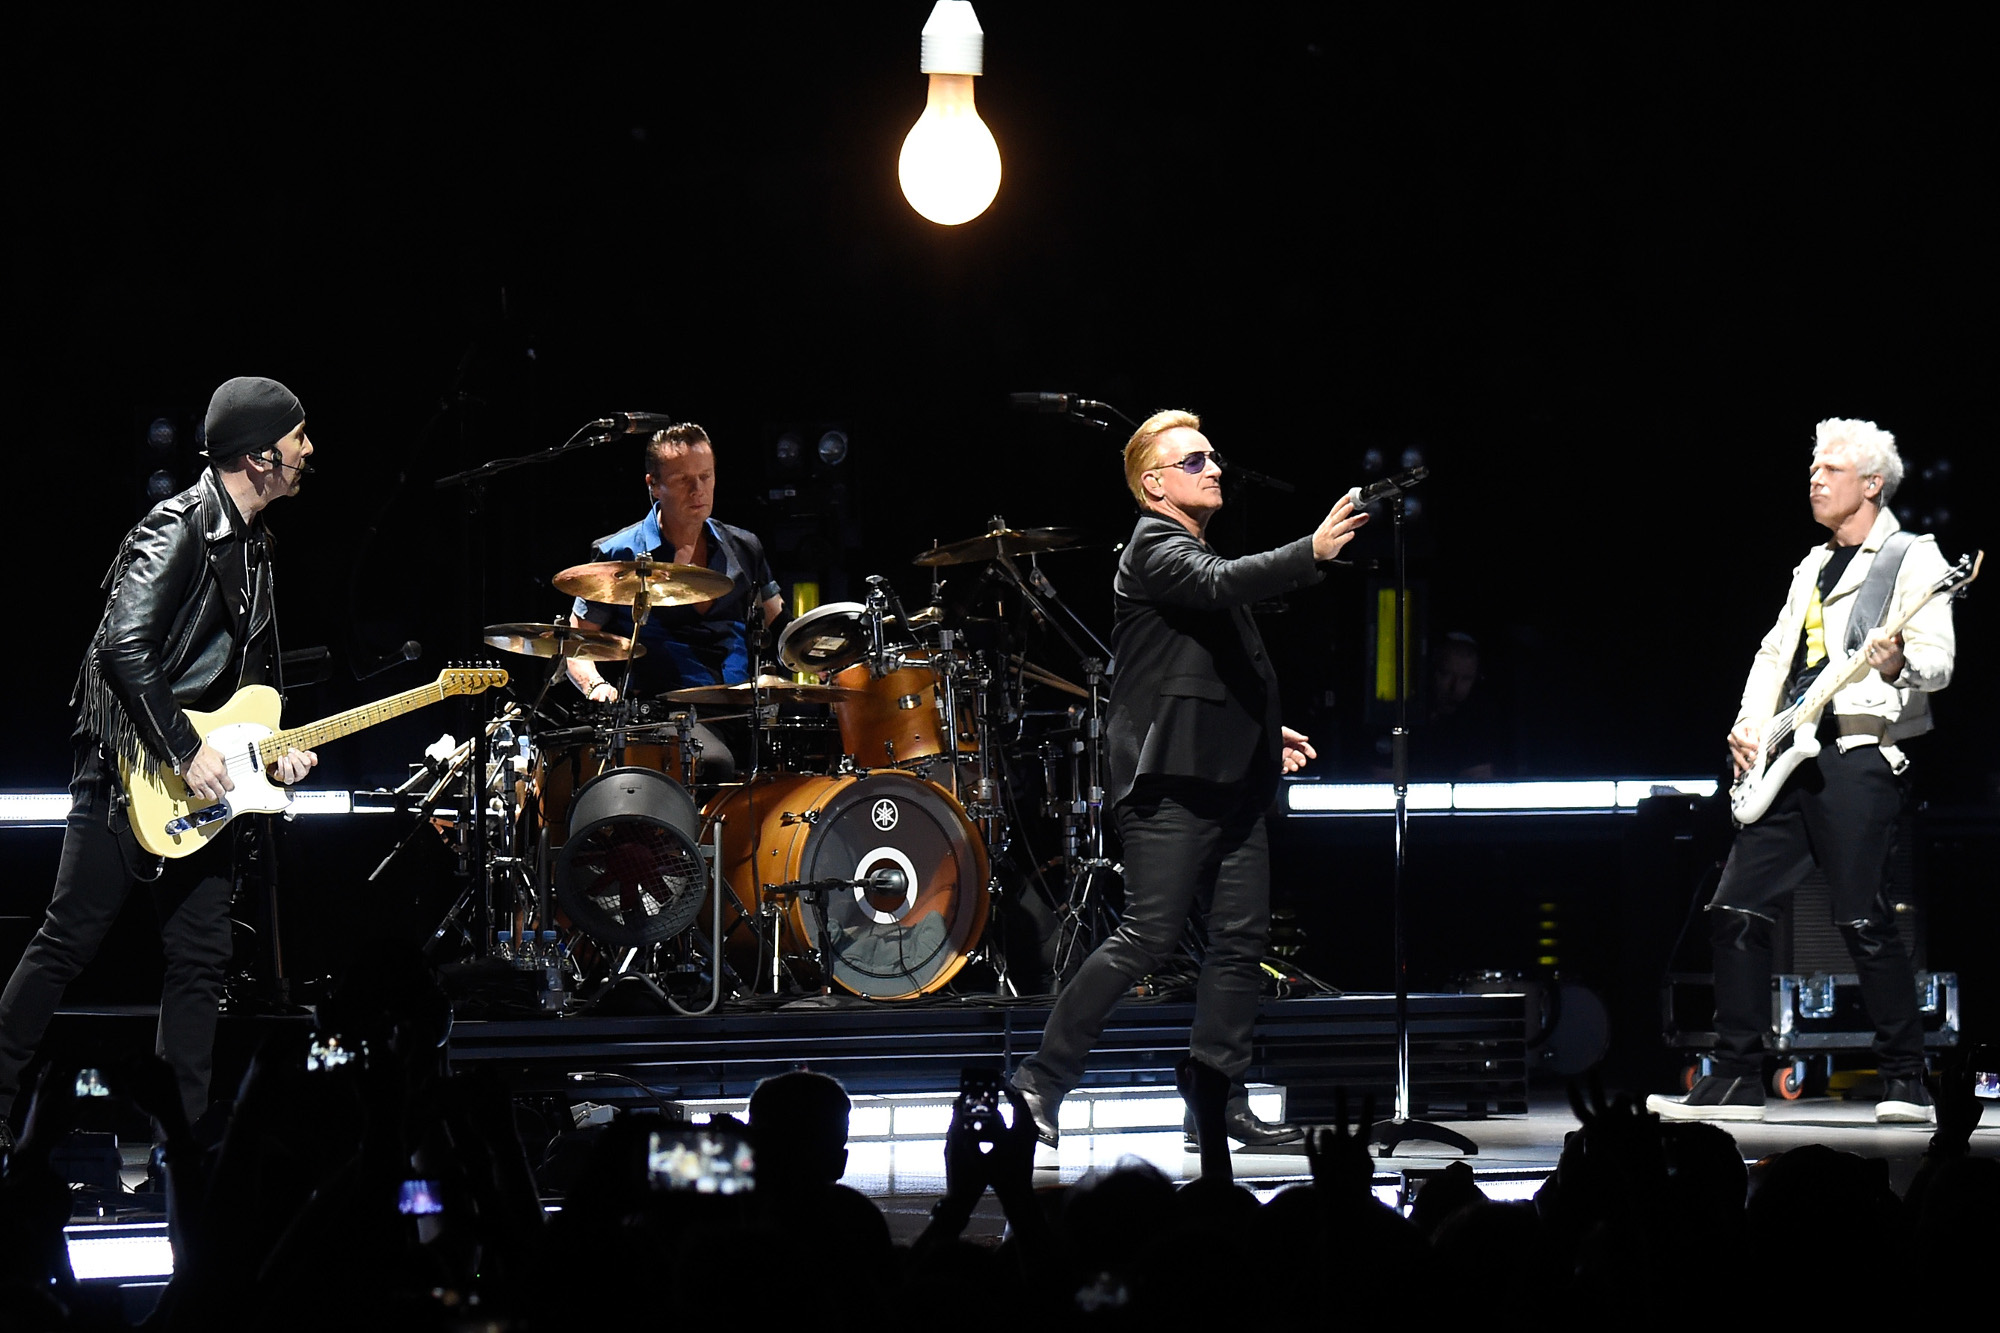 U2: can't teach an old dog new tricks